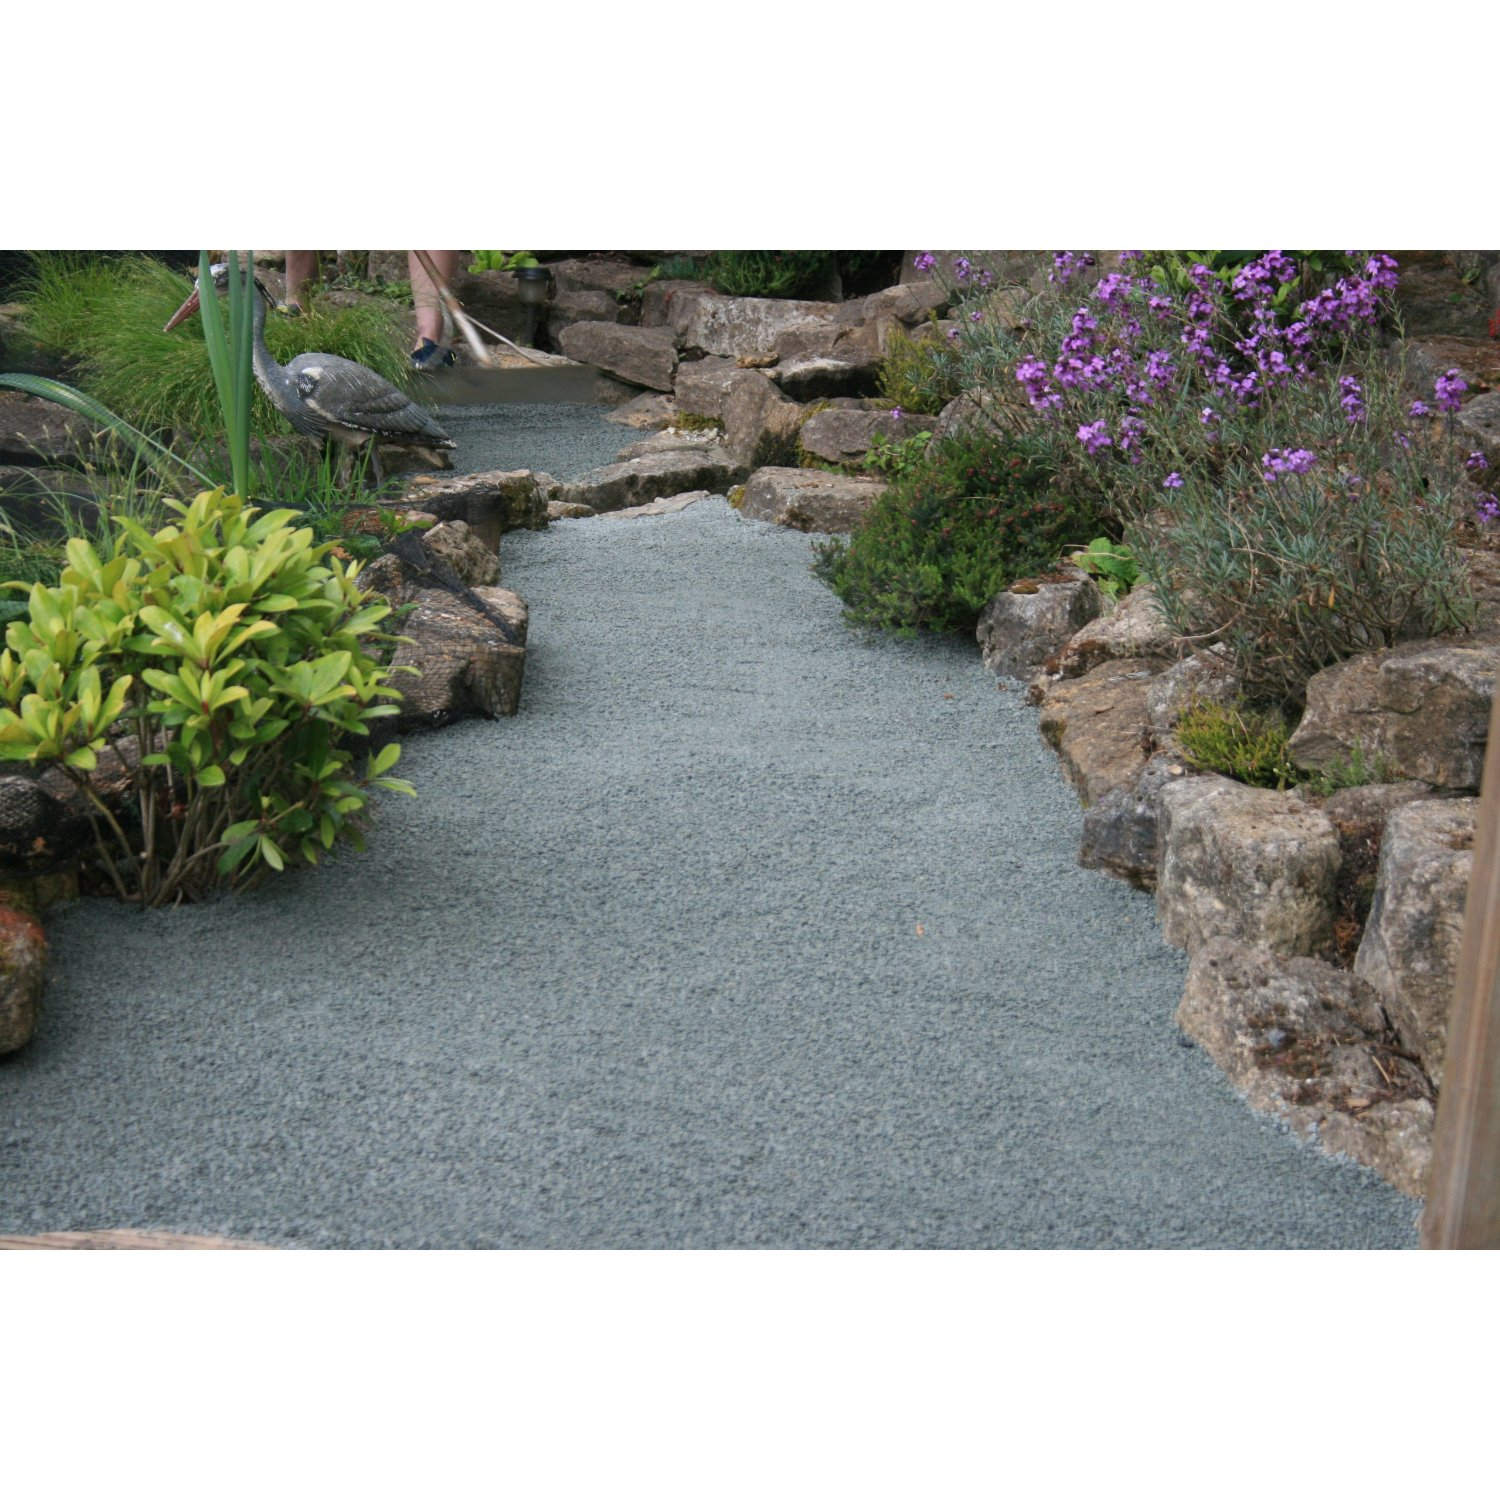 Permeable Gravel Driveways Stabilized For Vehicle And Pedestrian